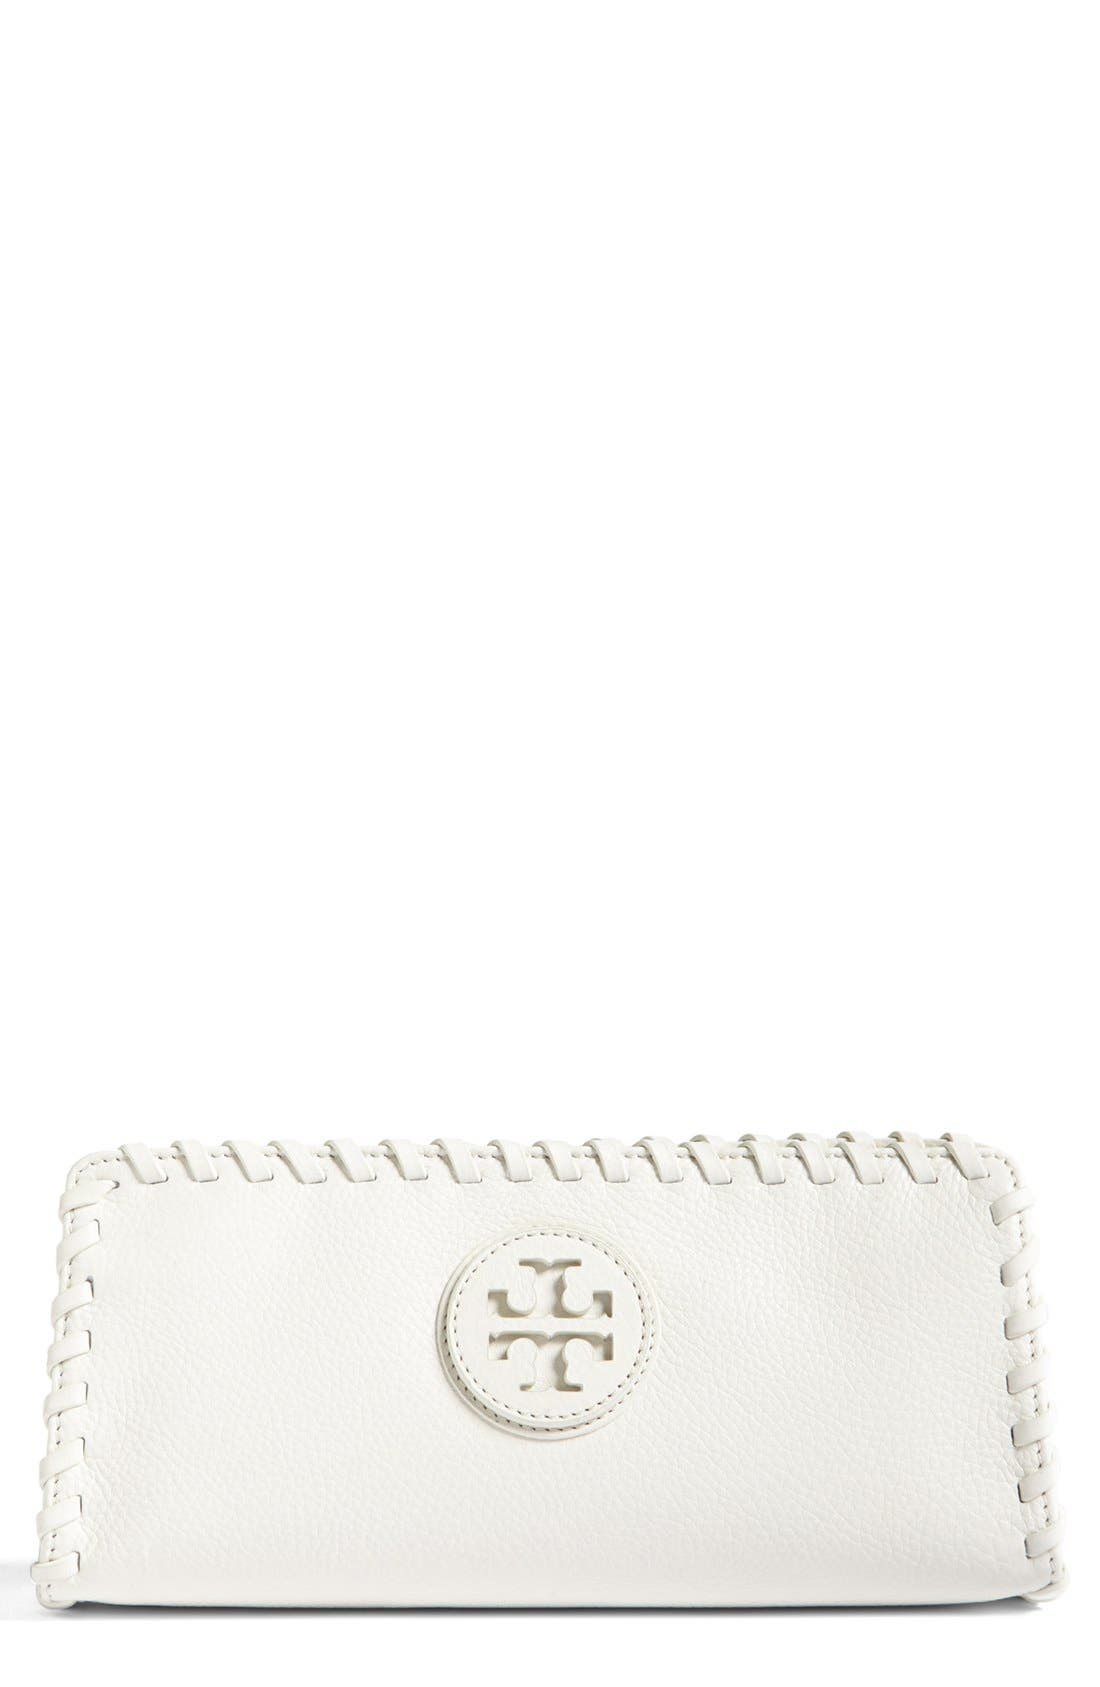 Alternate Image 1 Selected - Tory Burch 'Marion' Clutch